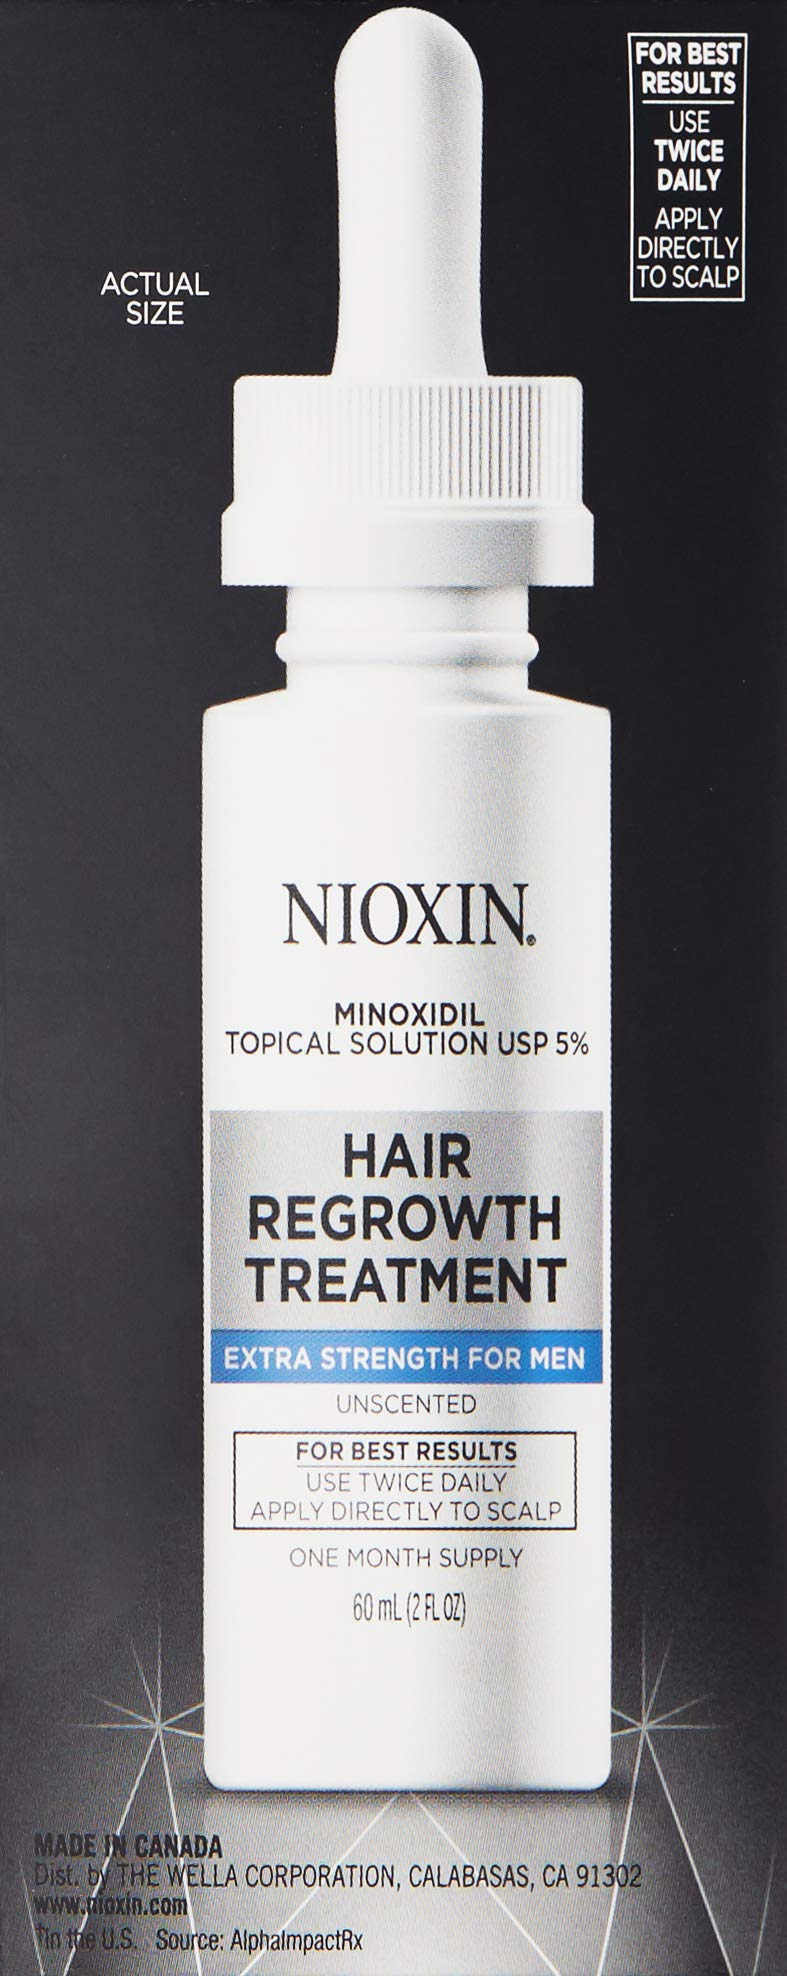 Nioxin Minoxidil Hair Regrowth Treatment Men, 6 oz. by Nioxin (Image #4)